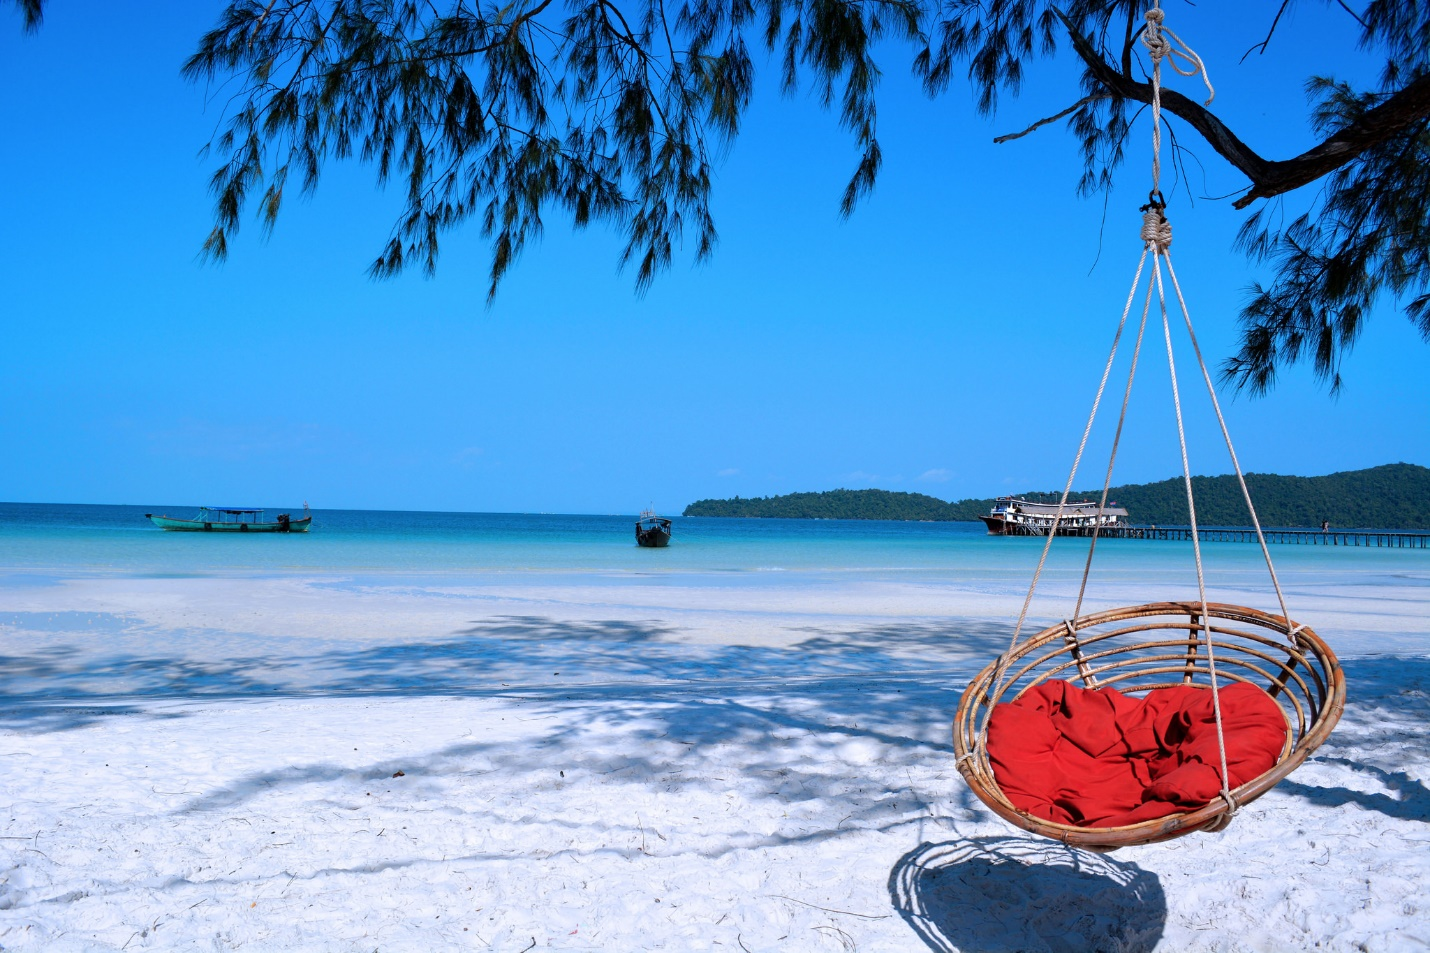 The peaceful beach in the East of Koh Rong island